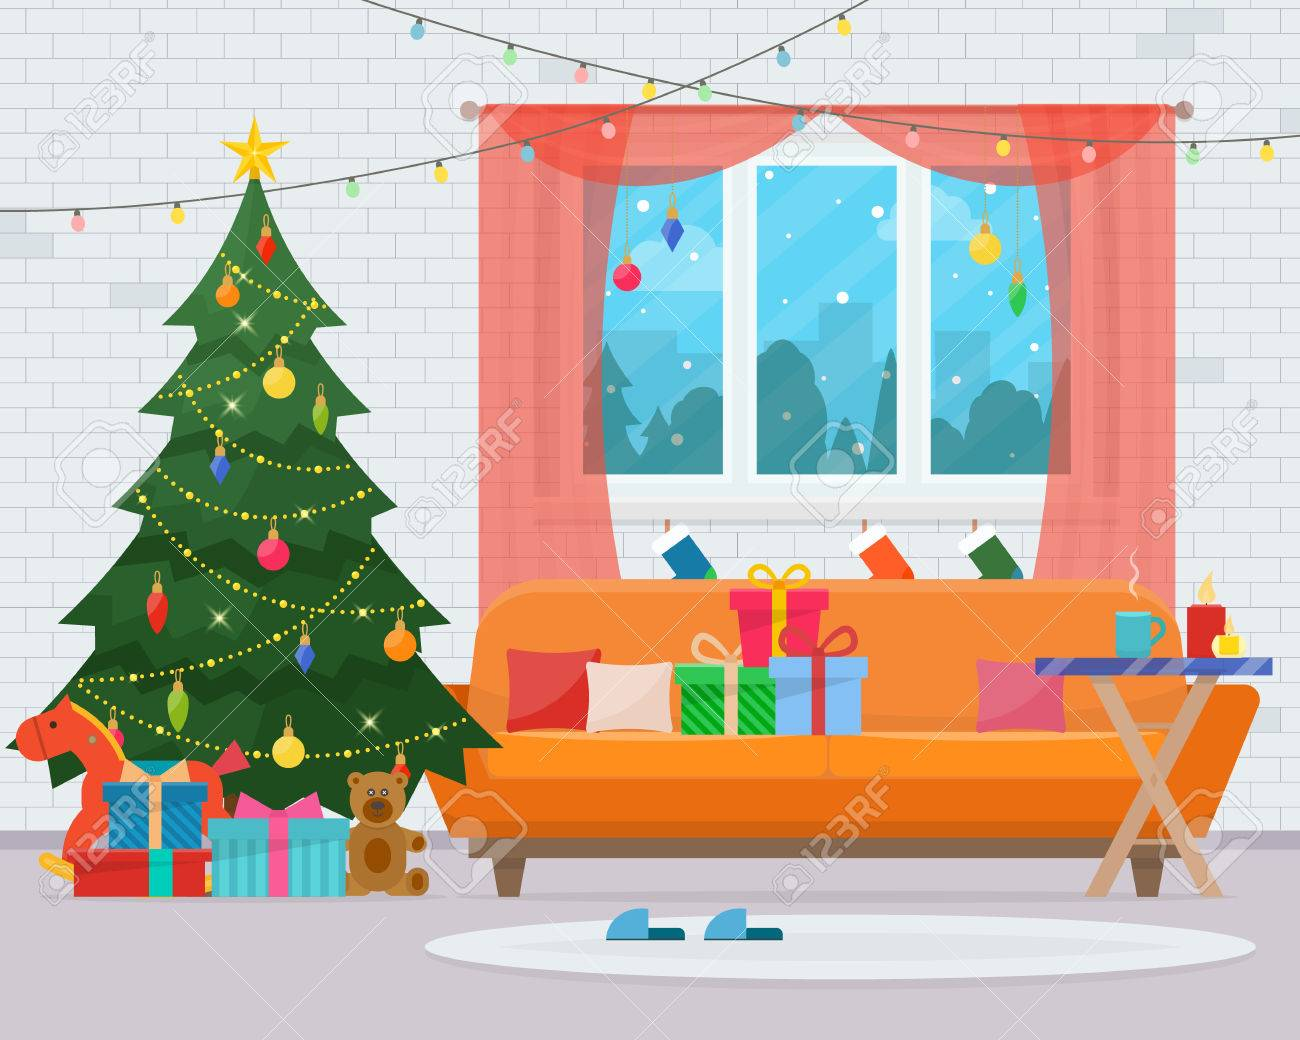 Christmas room interior. Christmas tree, sofa, gifts and decoration. Cozy home holiday. Flat style illustration. - 65709035